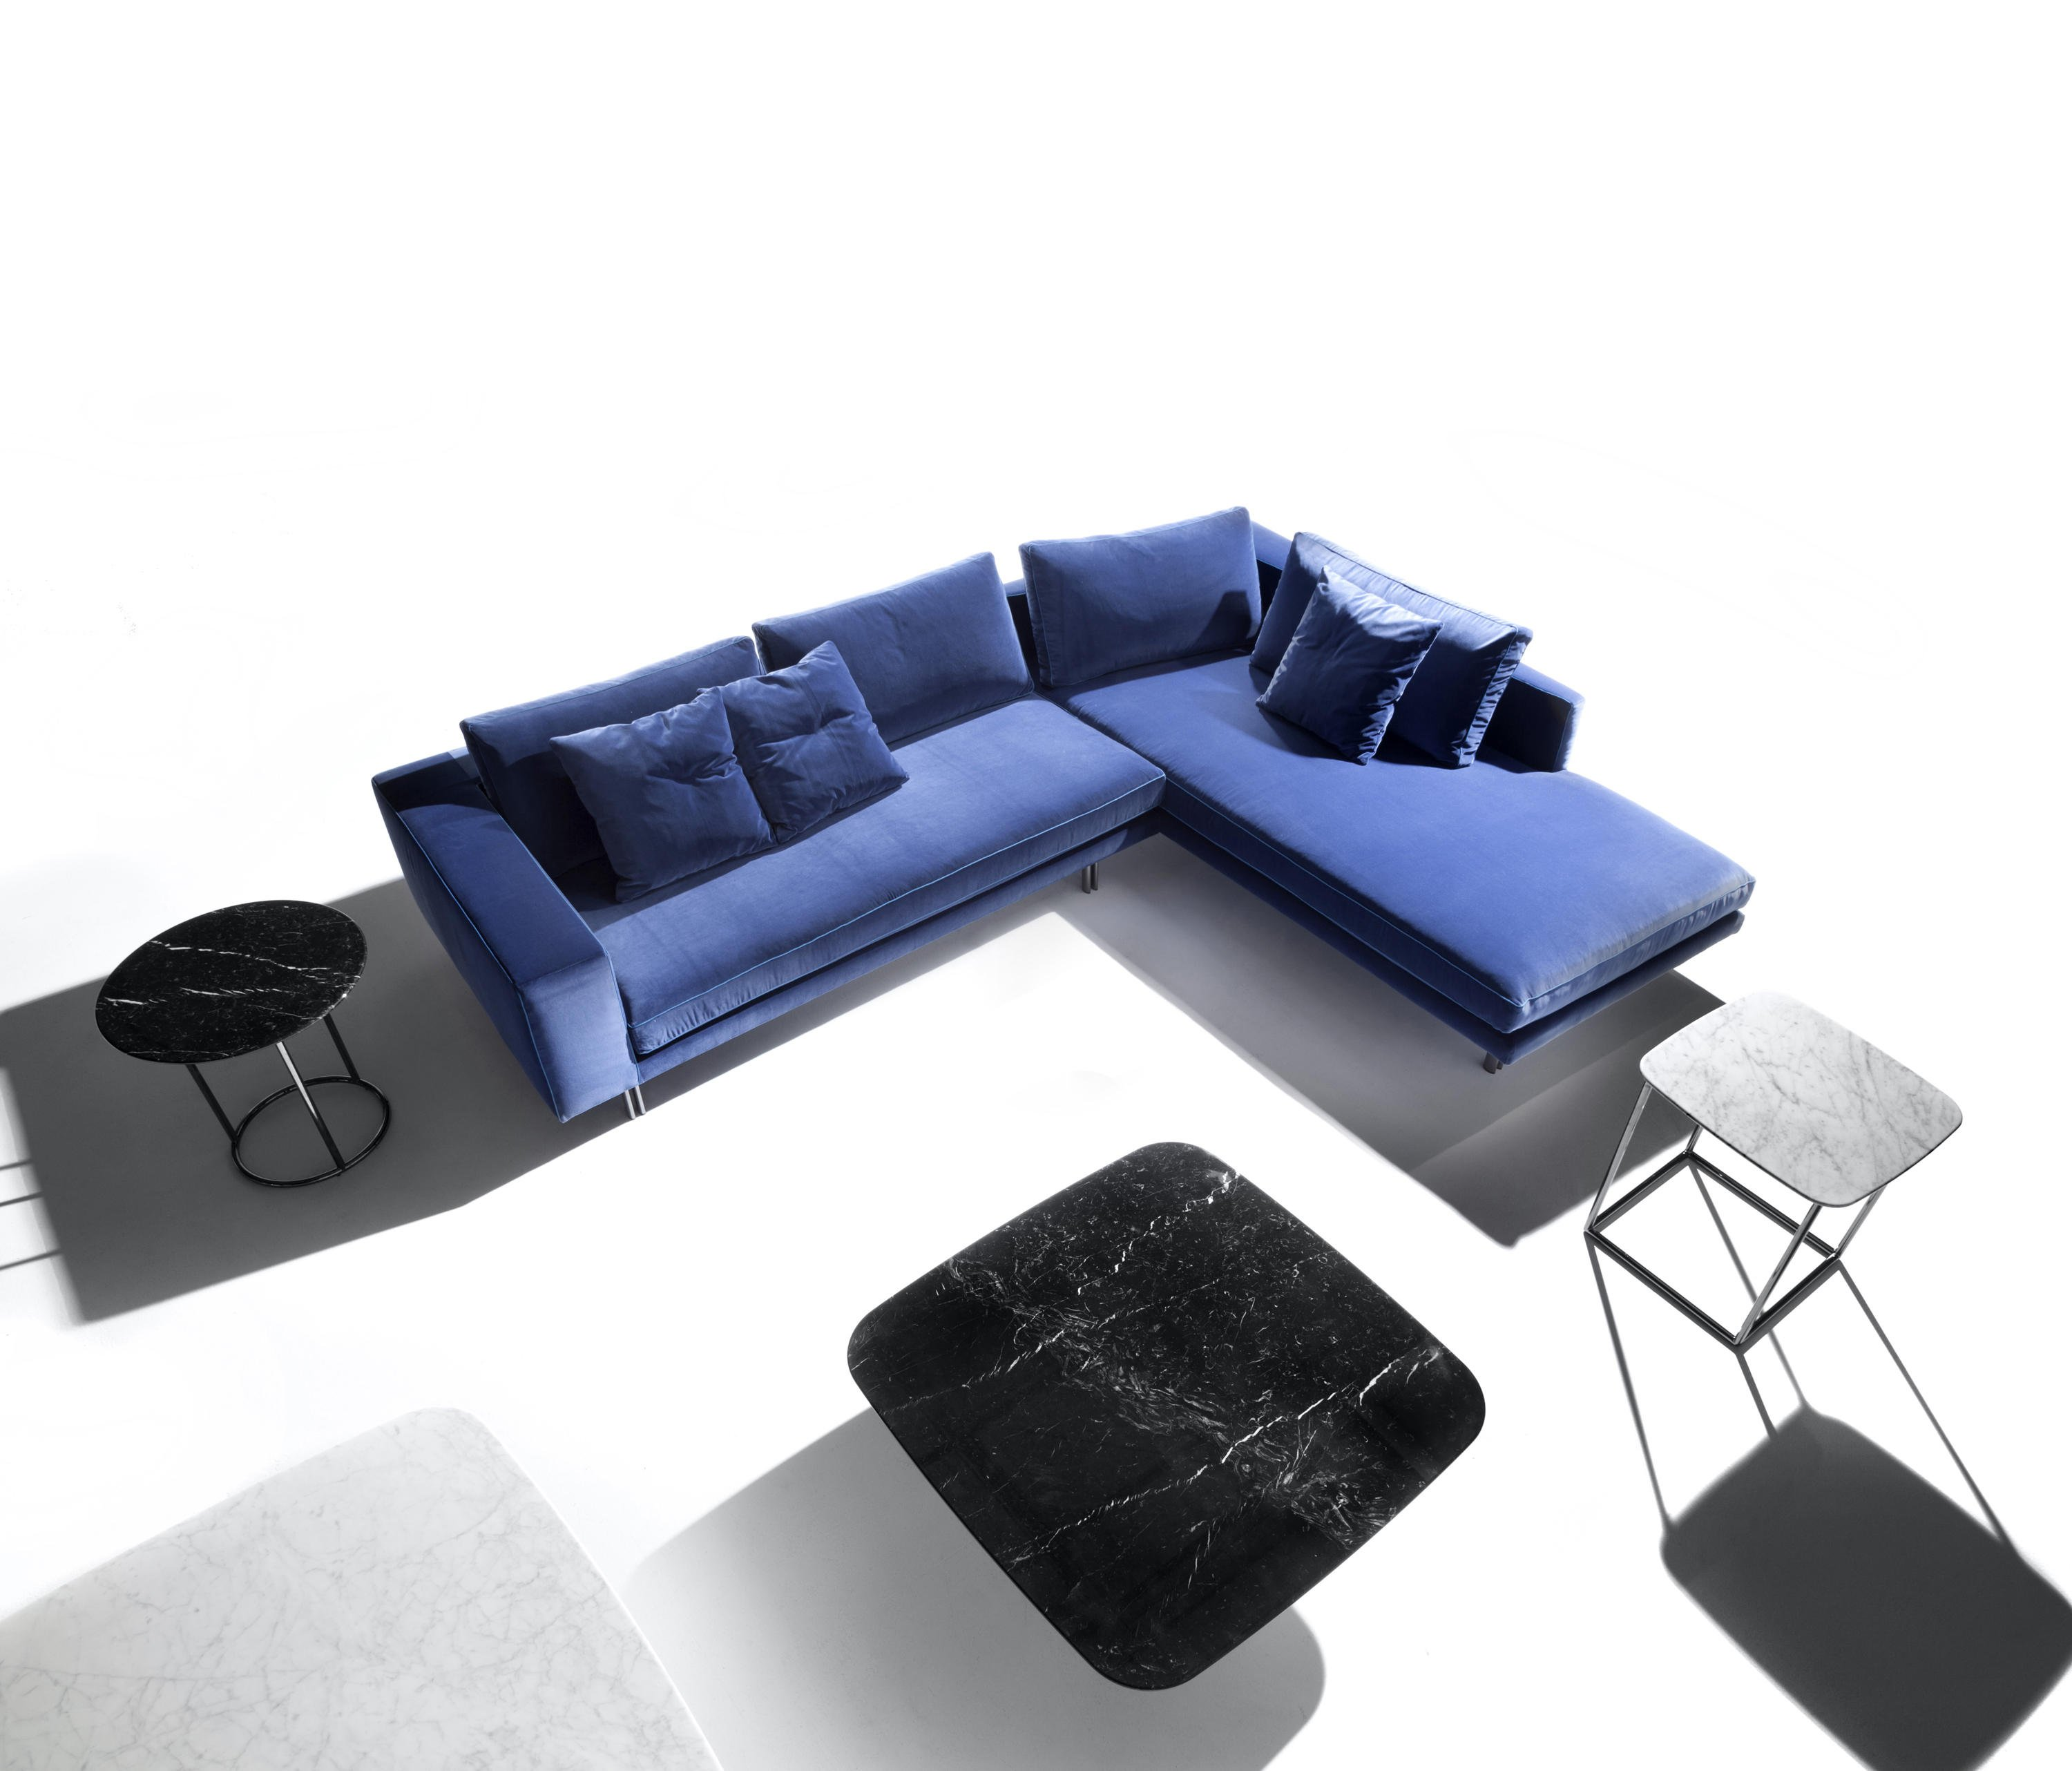 Inno Sofa Collection by Erba Italia